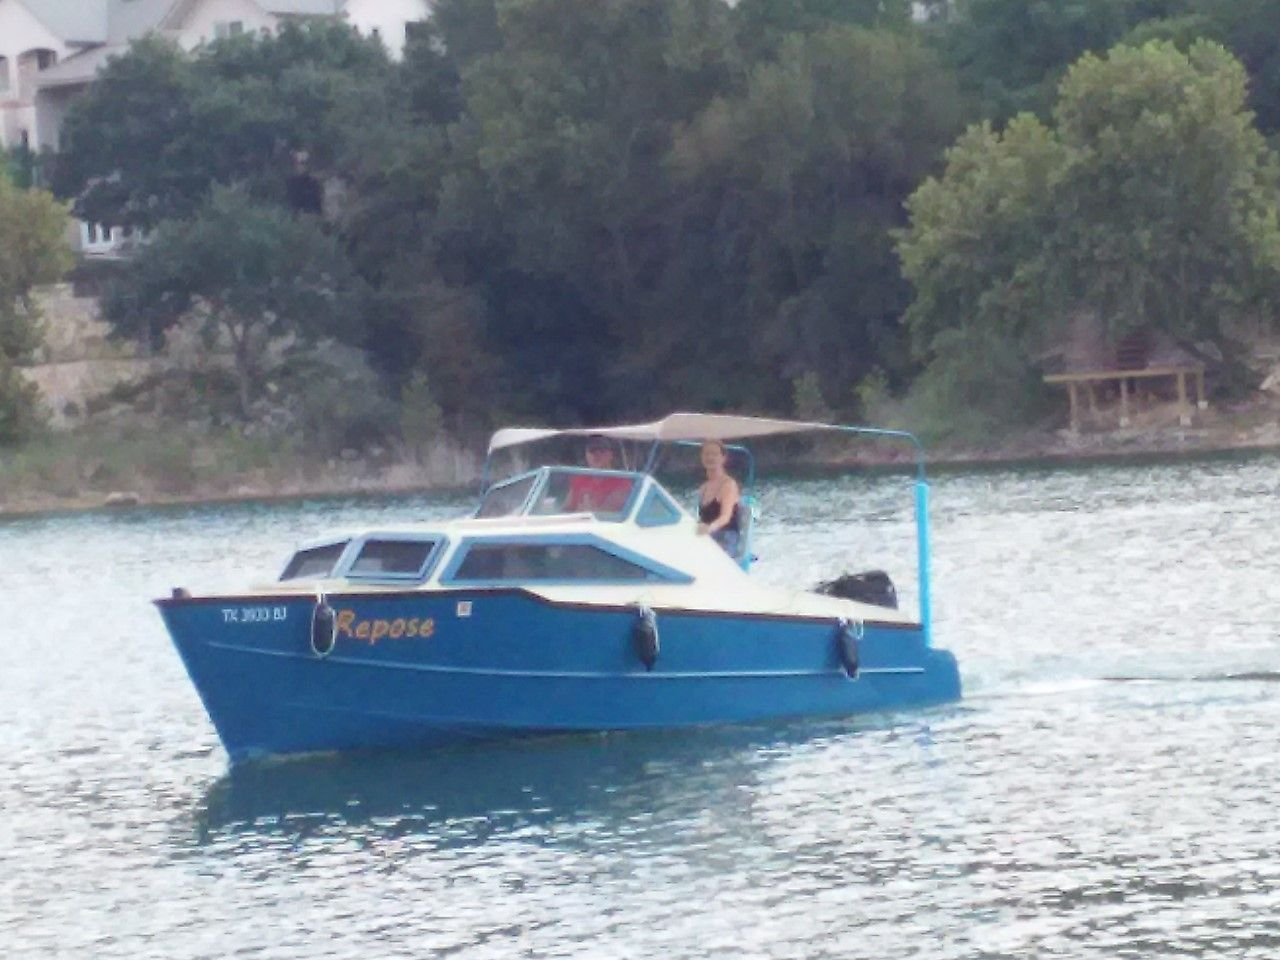 Best Classic Boats Images On Pinterest Vintage Boats Boats - Blue fin boat decalsblue fin sportsman need some advice pageiboats